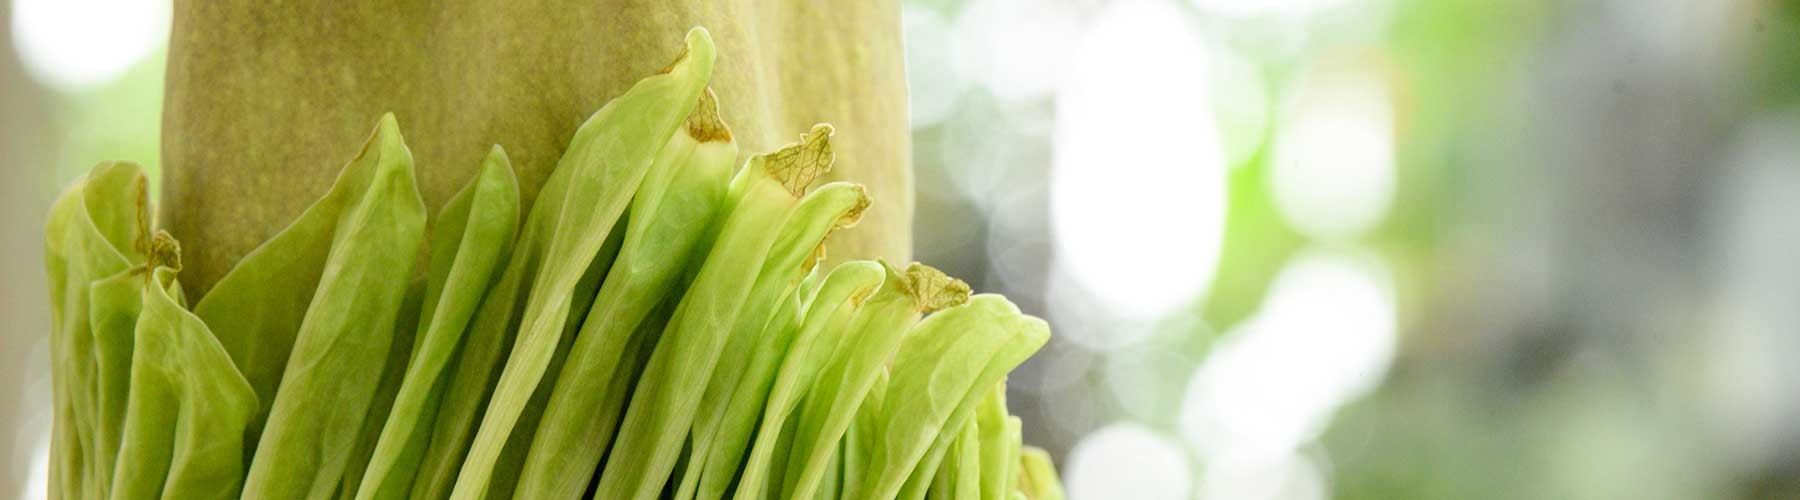 corpse flower close up